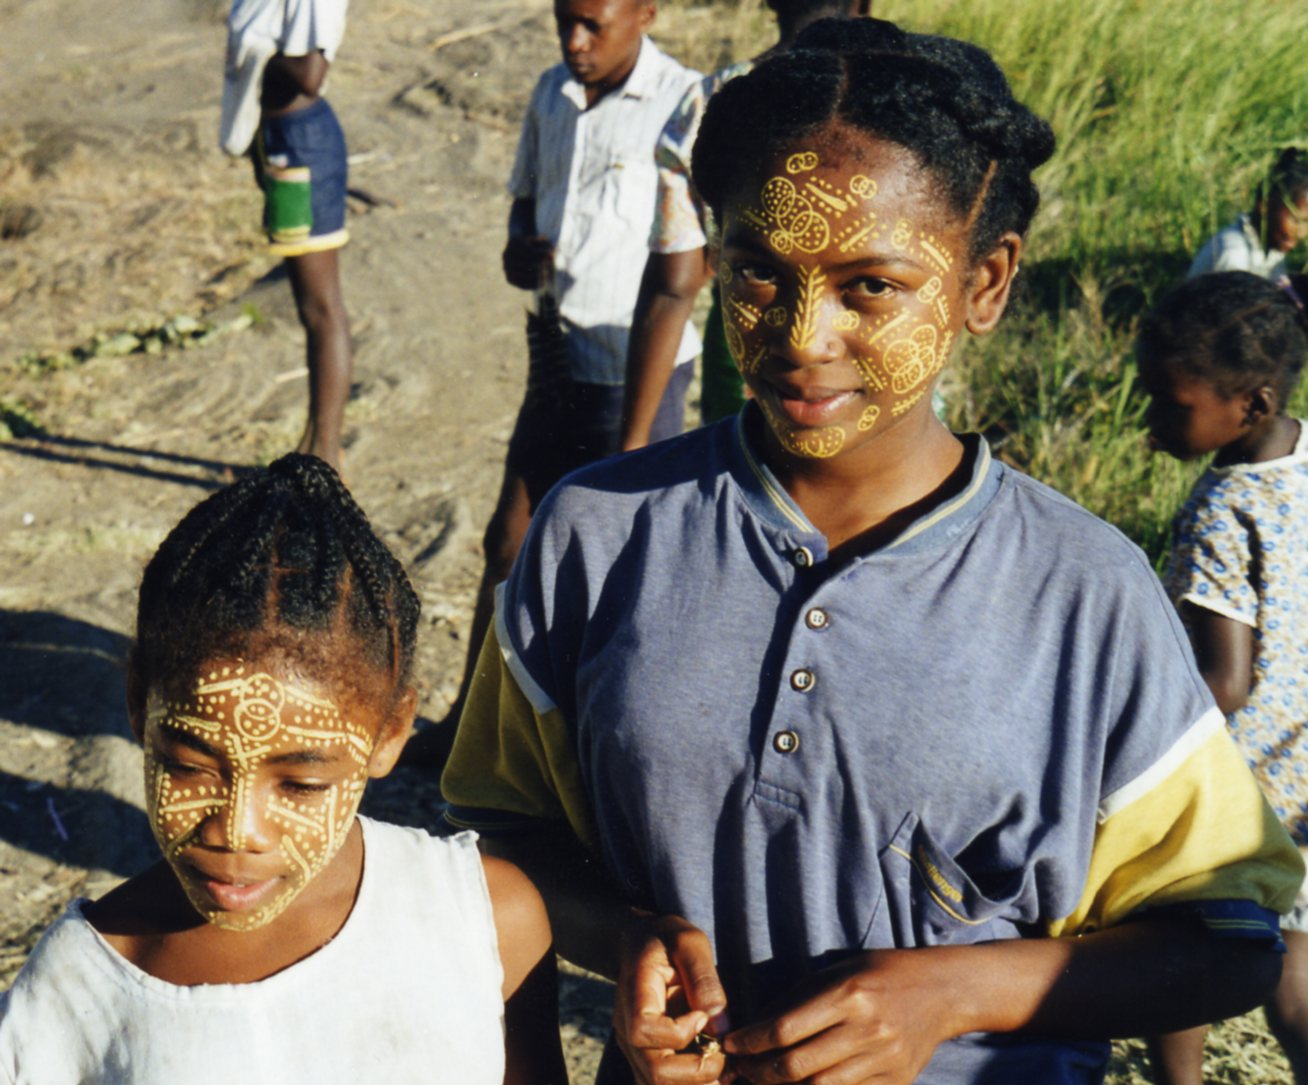 Blissful life on Madagascar islands was substituted for some mainland madness. -